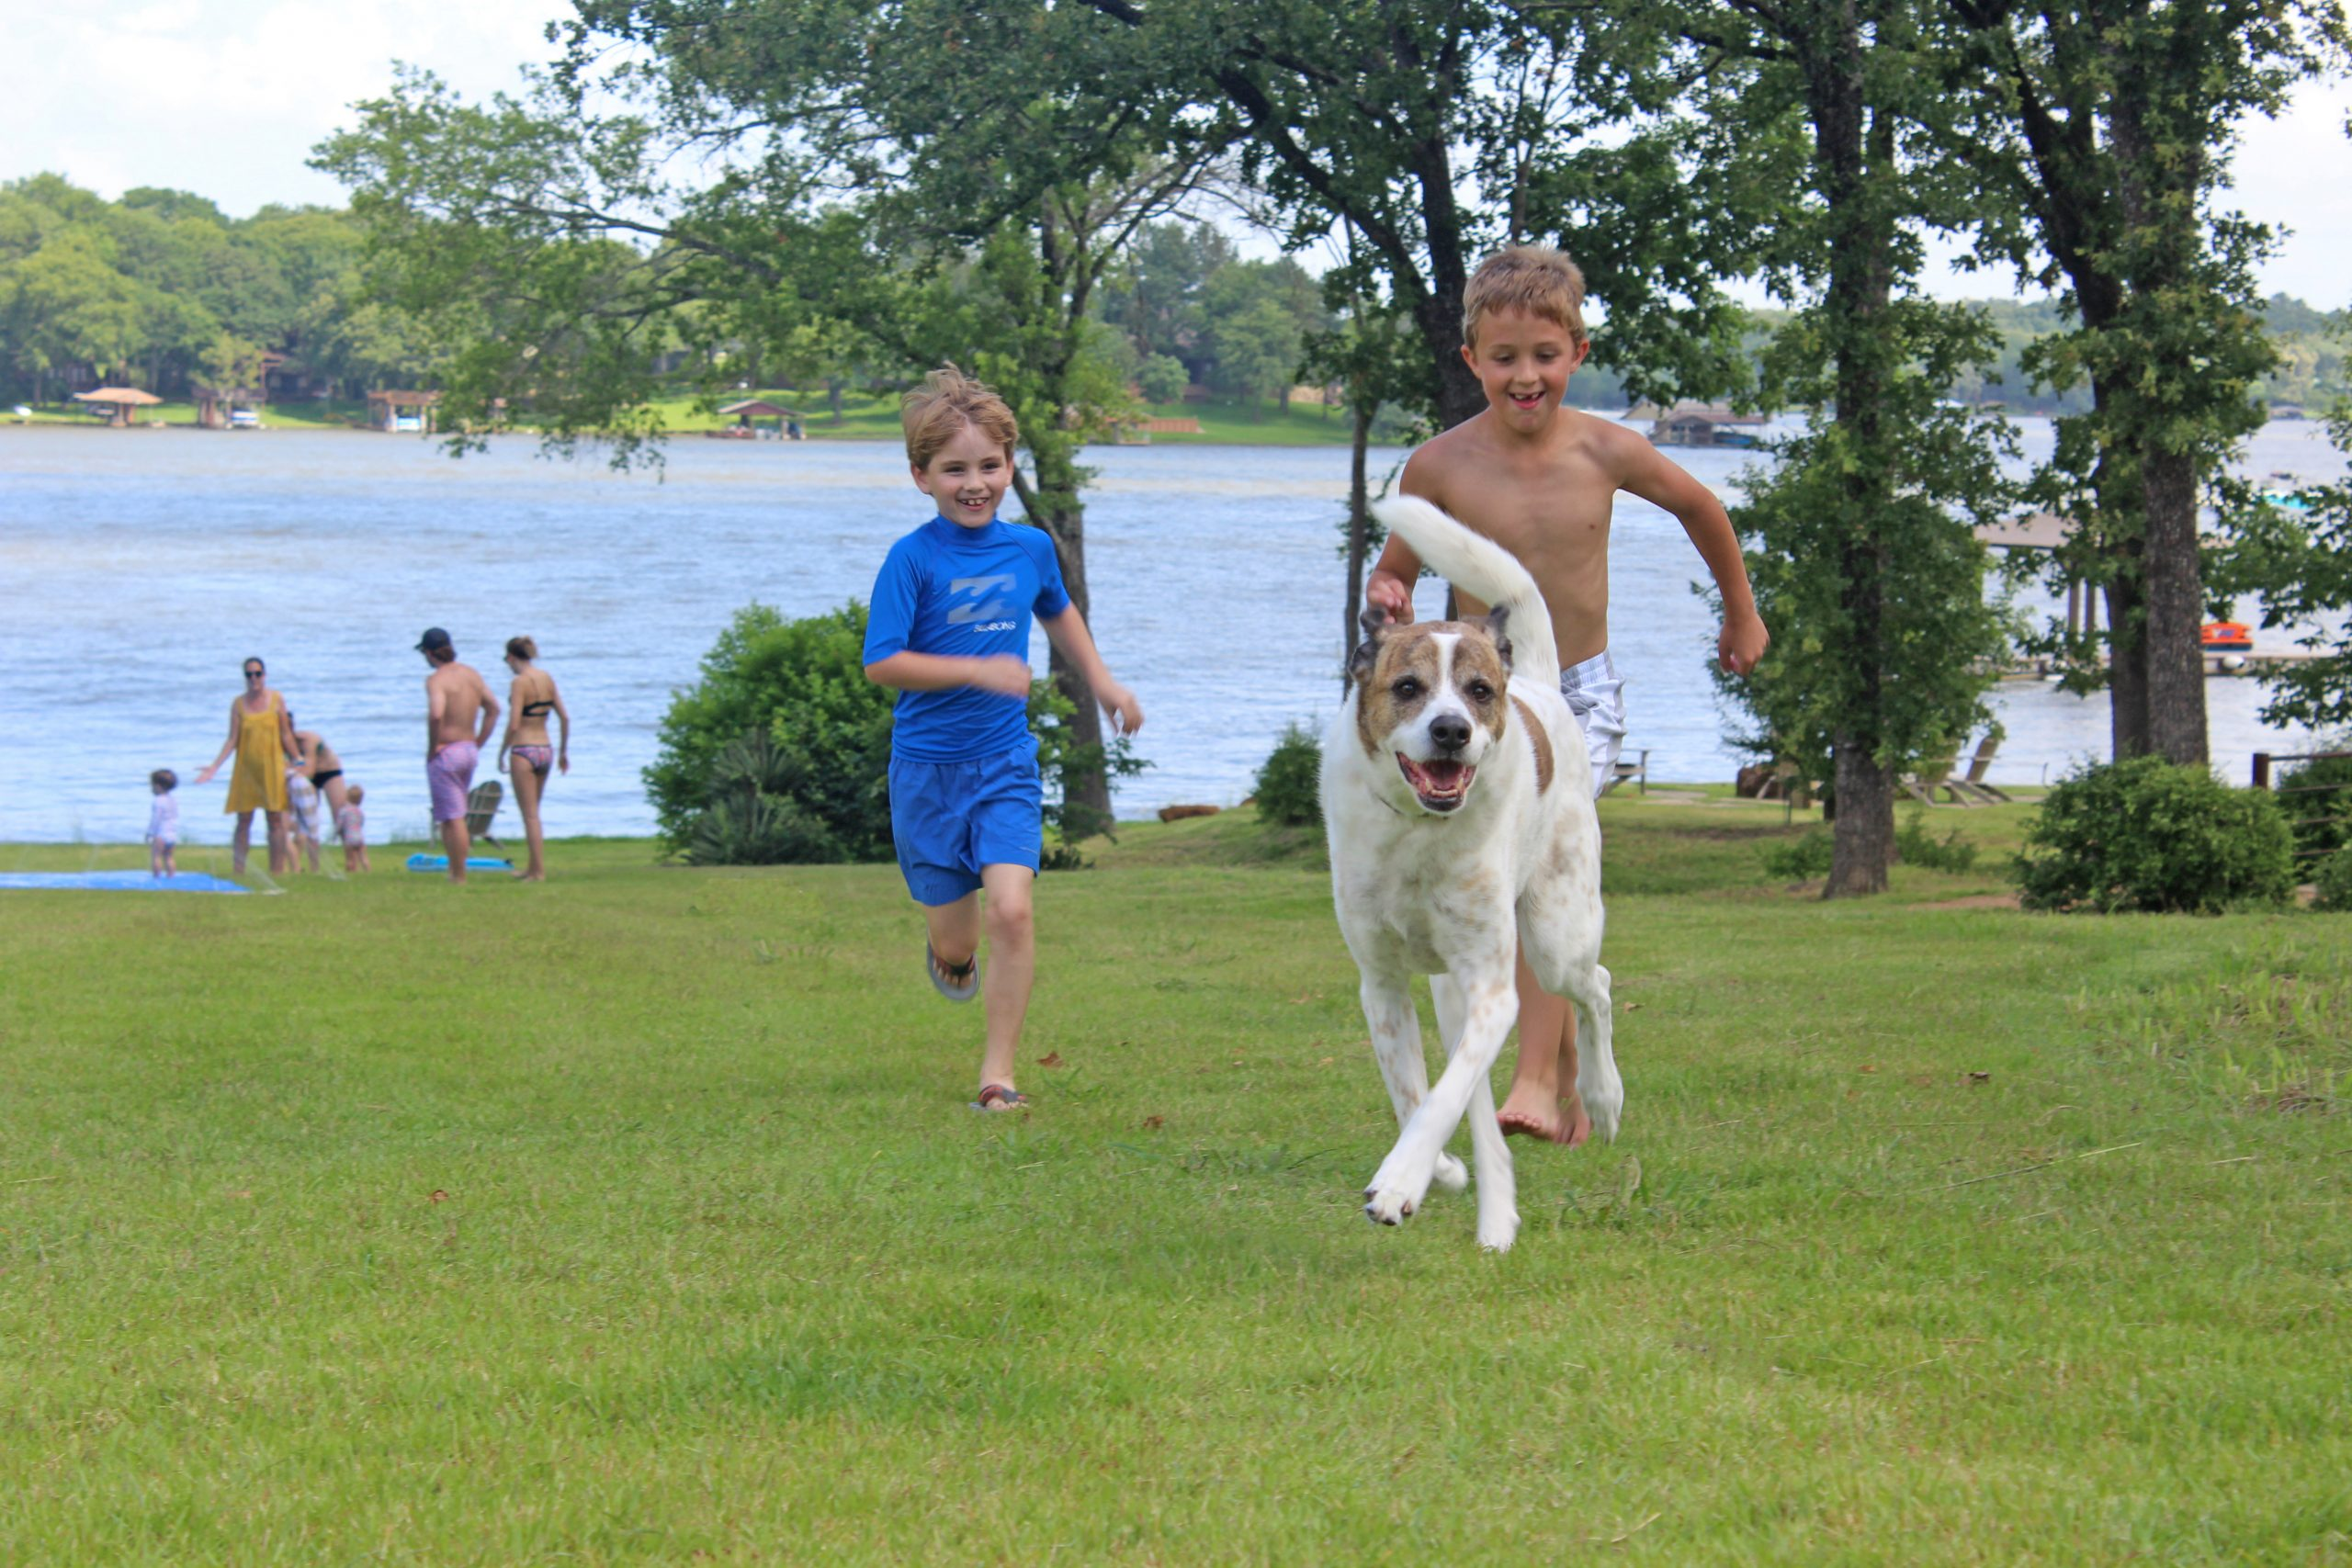 kids and dogs playing